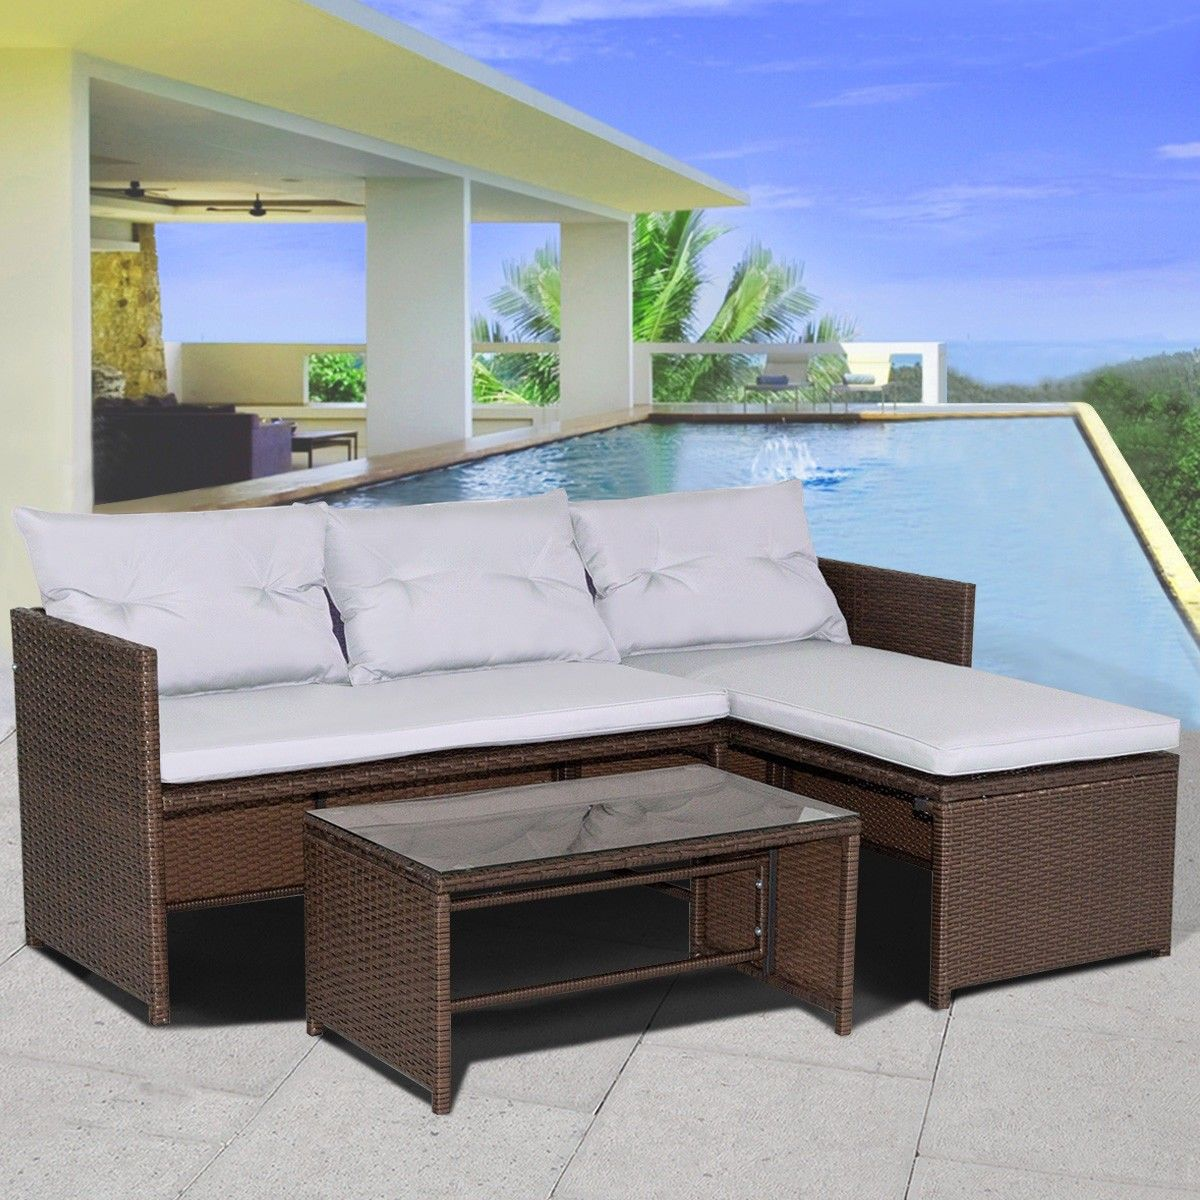 3 Pcs Outdoor #Rattan Wicker Couch Sofa Furniture Set